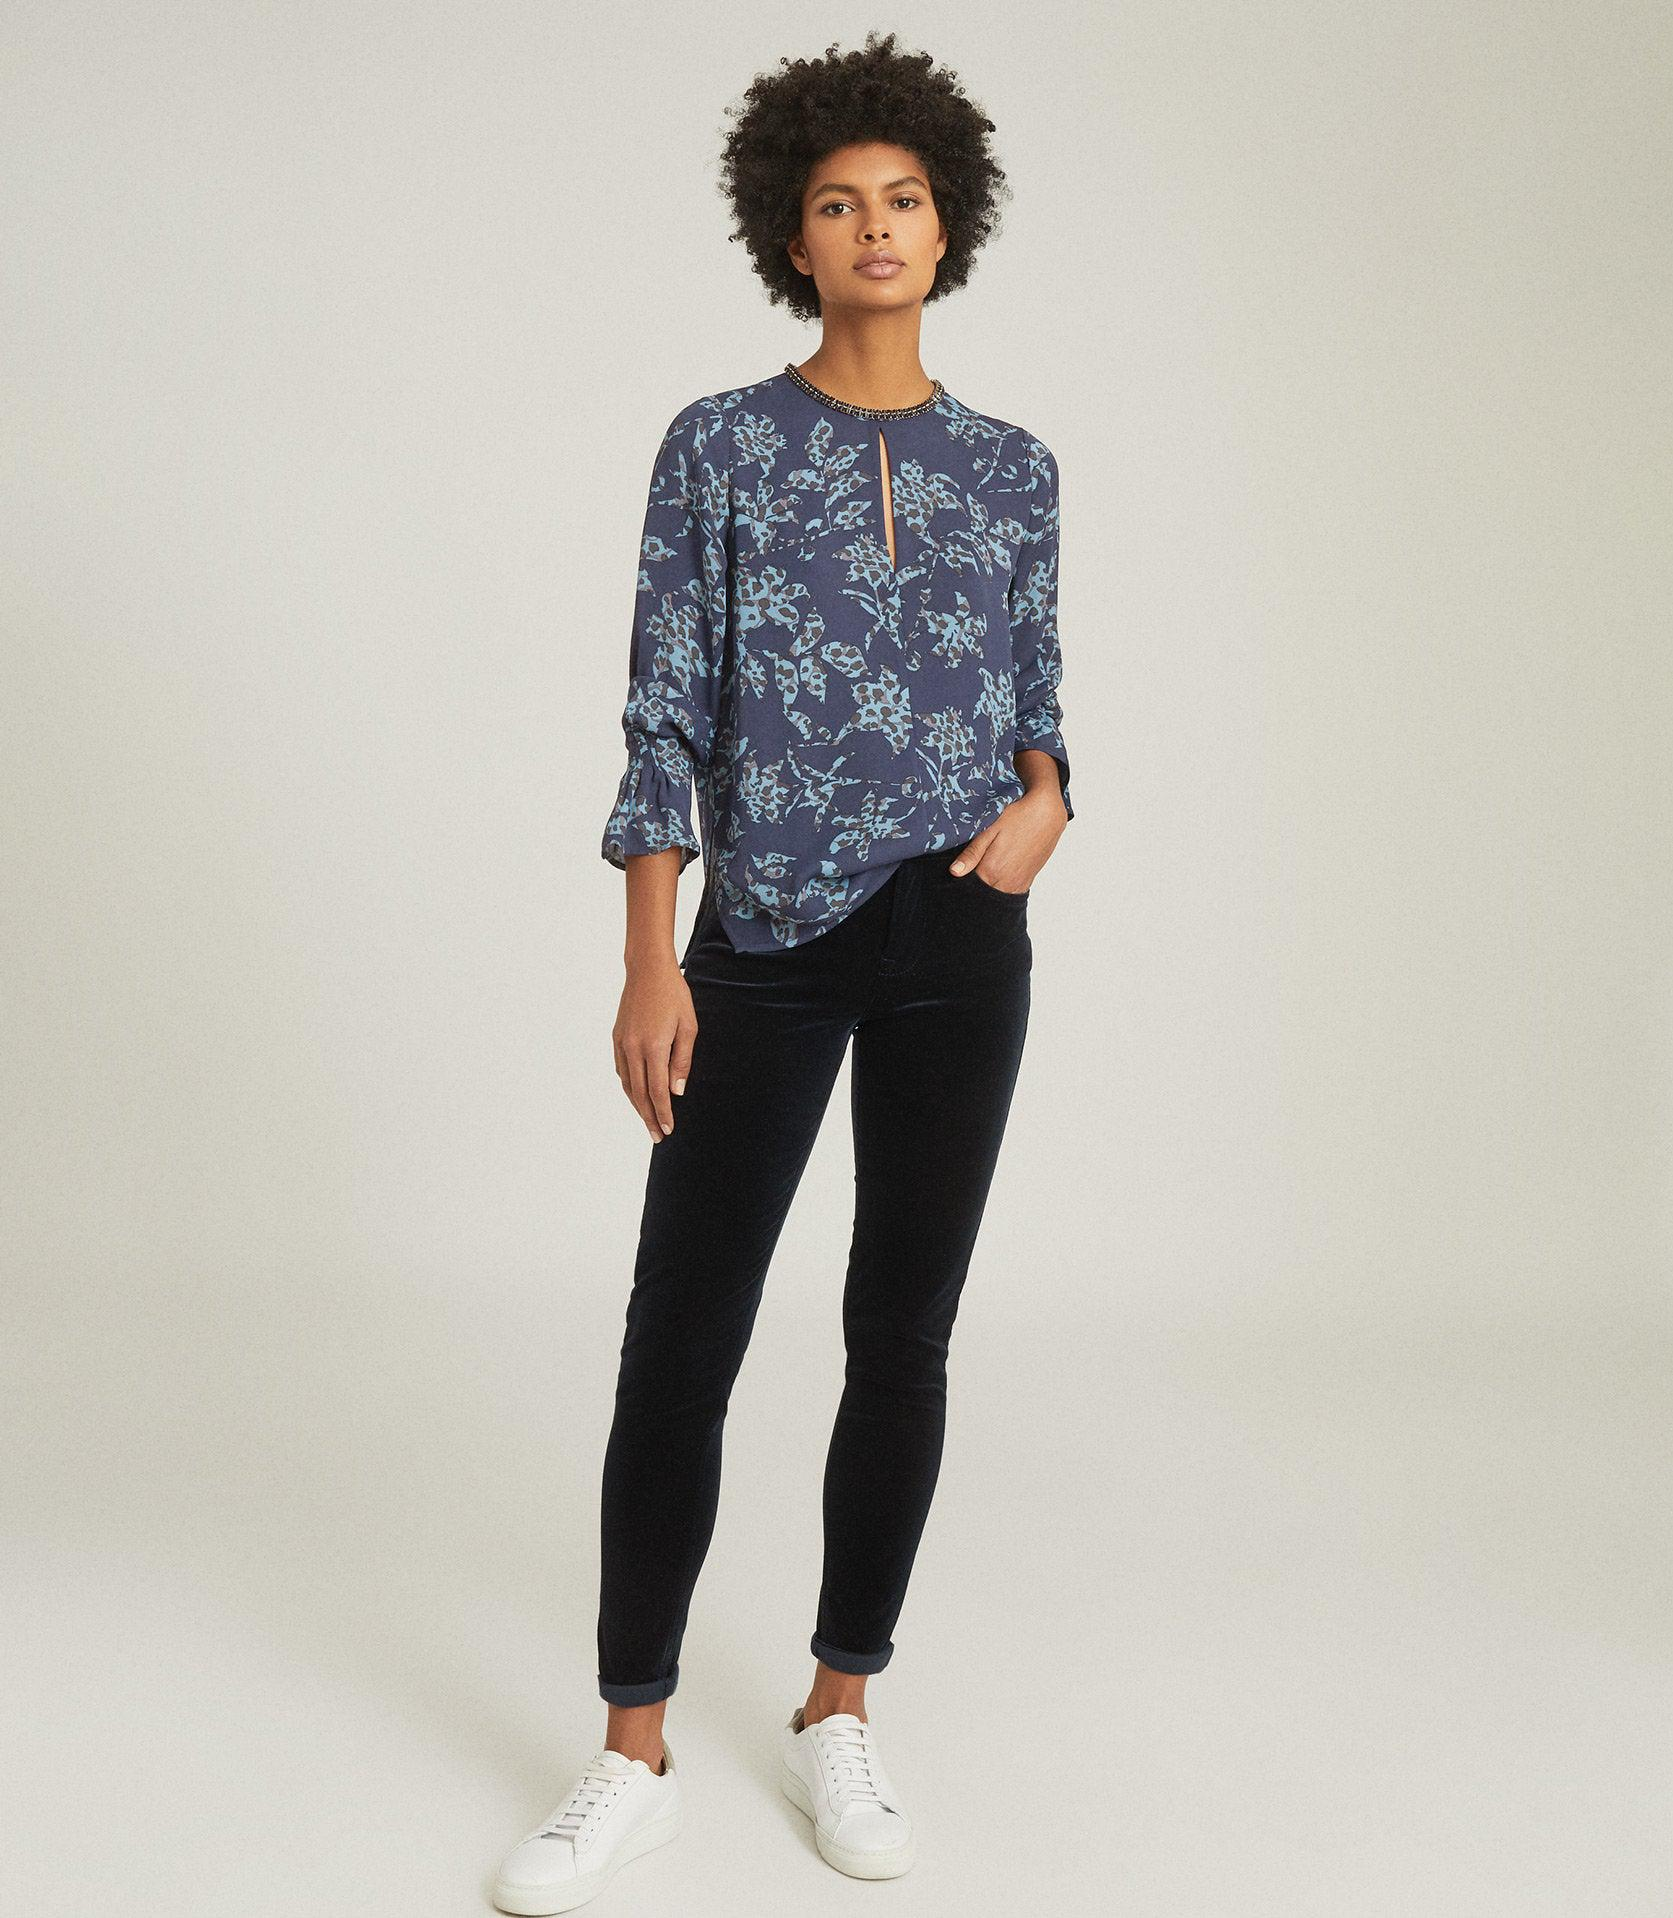 MARINA - PRINTED BLOUSE WITH EMBELLISHMENT DETAIL